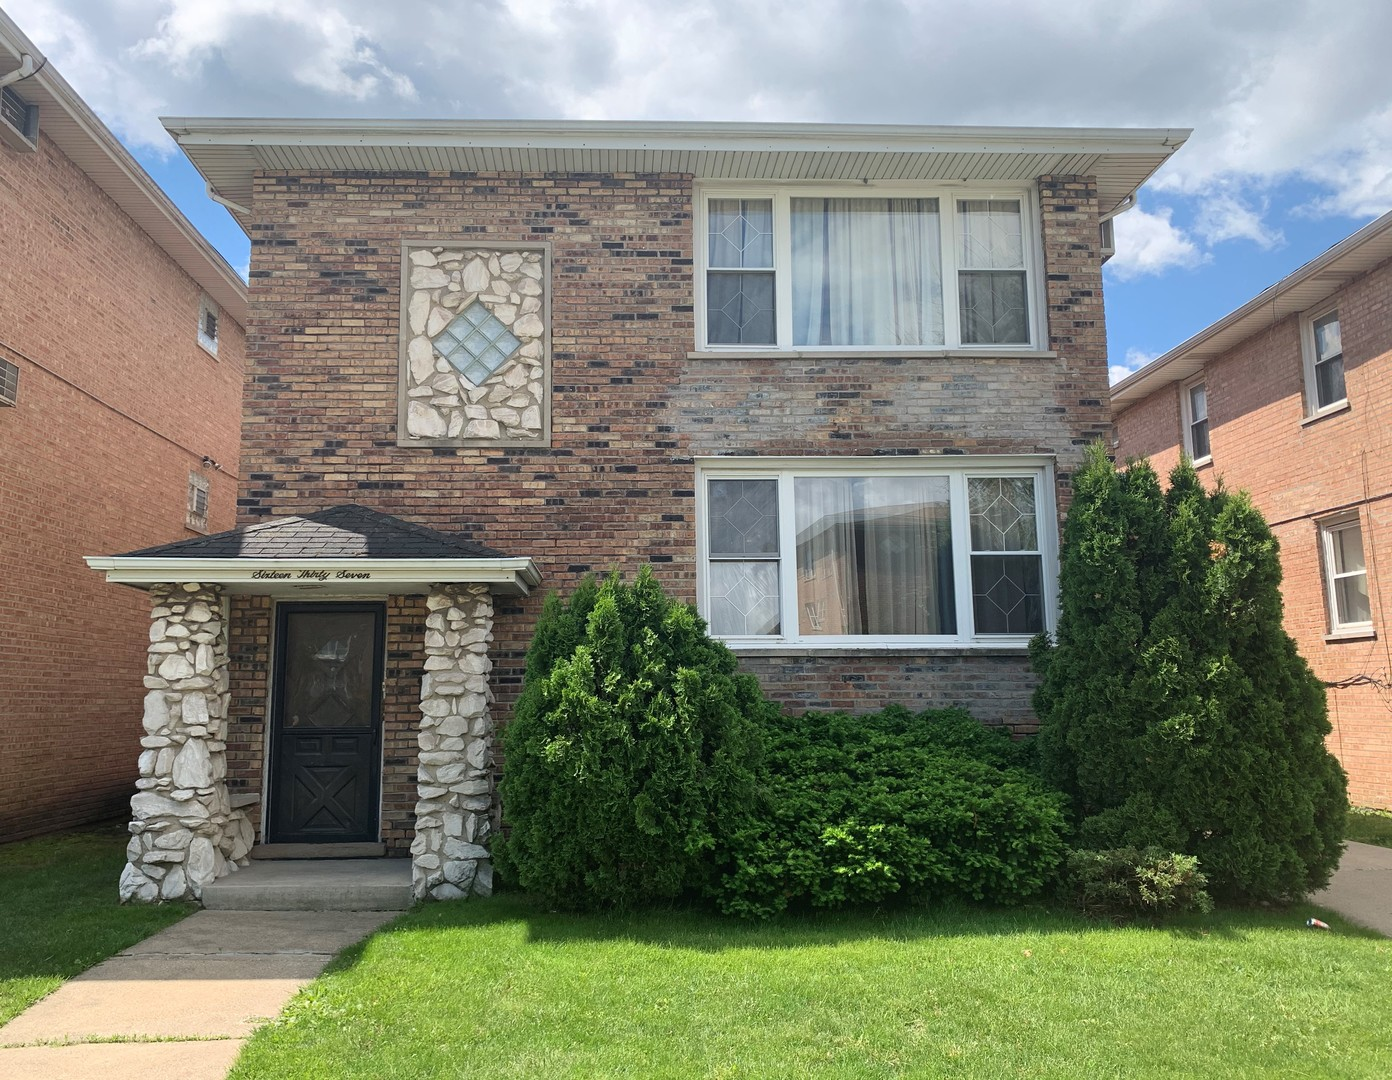 """Check out this excellent, well maintained 2 flat building in Calumet City.  Two 3 bedroom units and full basement that includes an extra bedroom, bar, and full bathroom! Master baths included in both units.  Won't last long!  AS IS"""" with lots of potential. *Buyer to assume all Village inspections, requirements and repairs*.  Minor repairs are needed. With a little sweat equity this house would be a great investment home. Property is sold AS-IS!"""